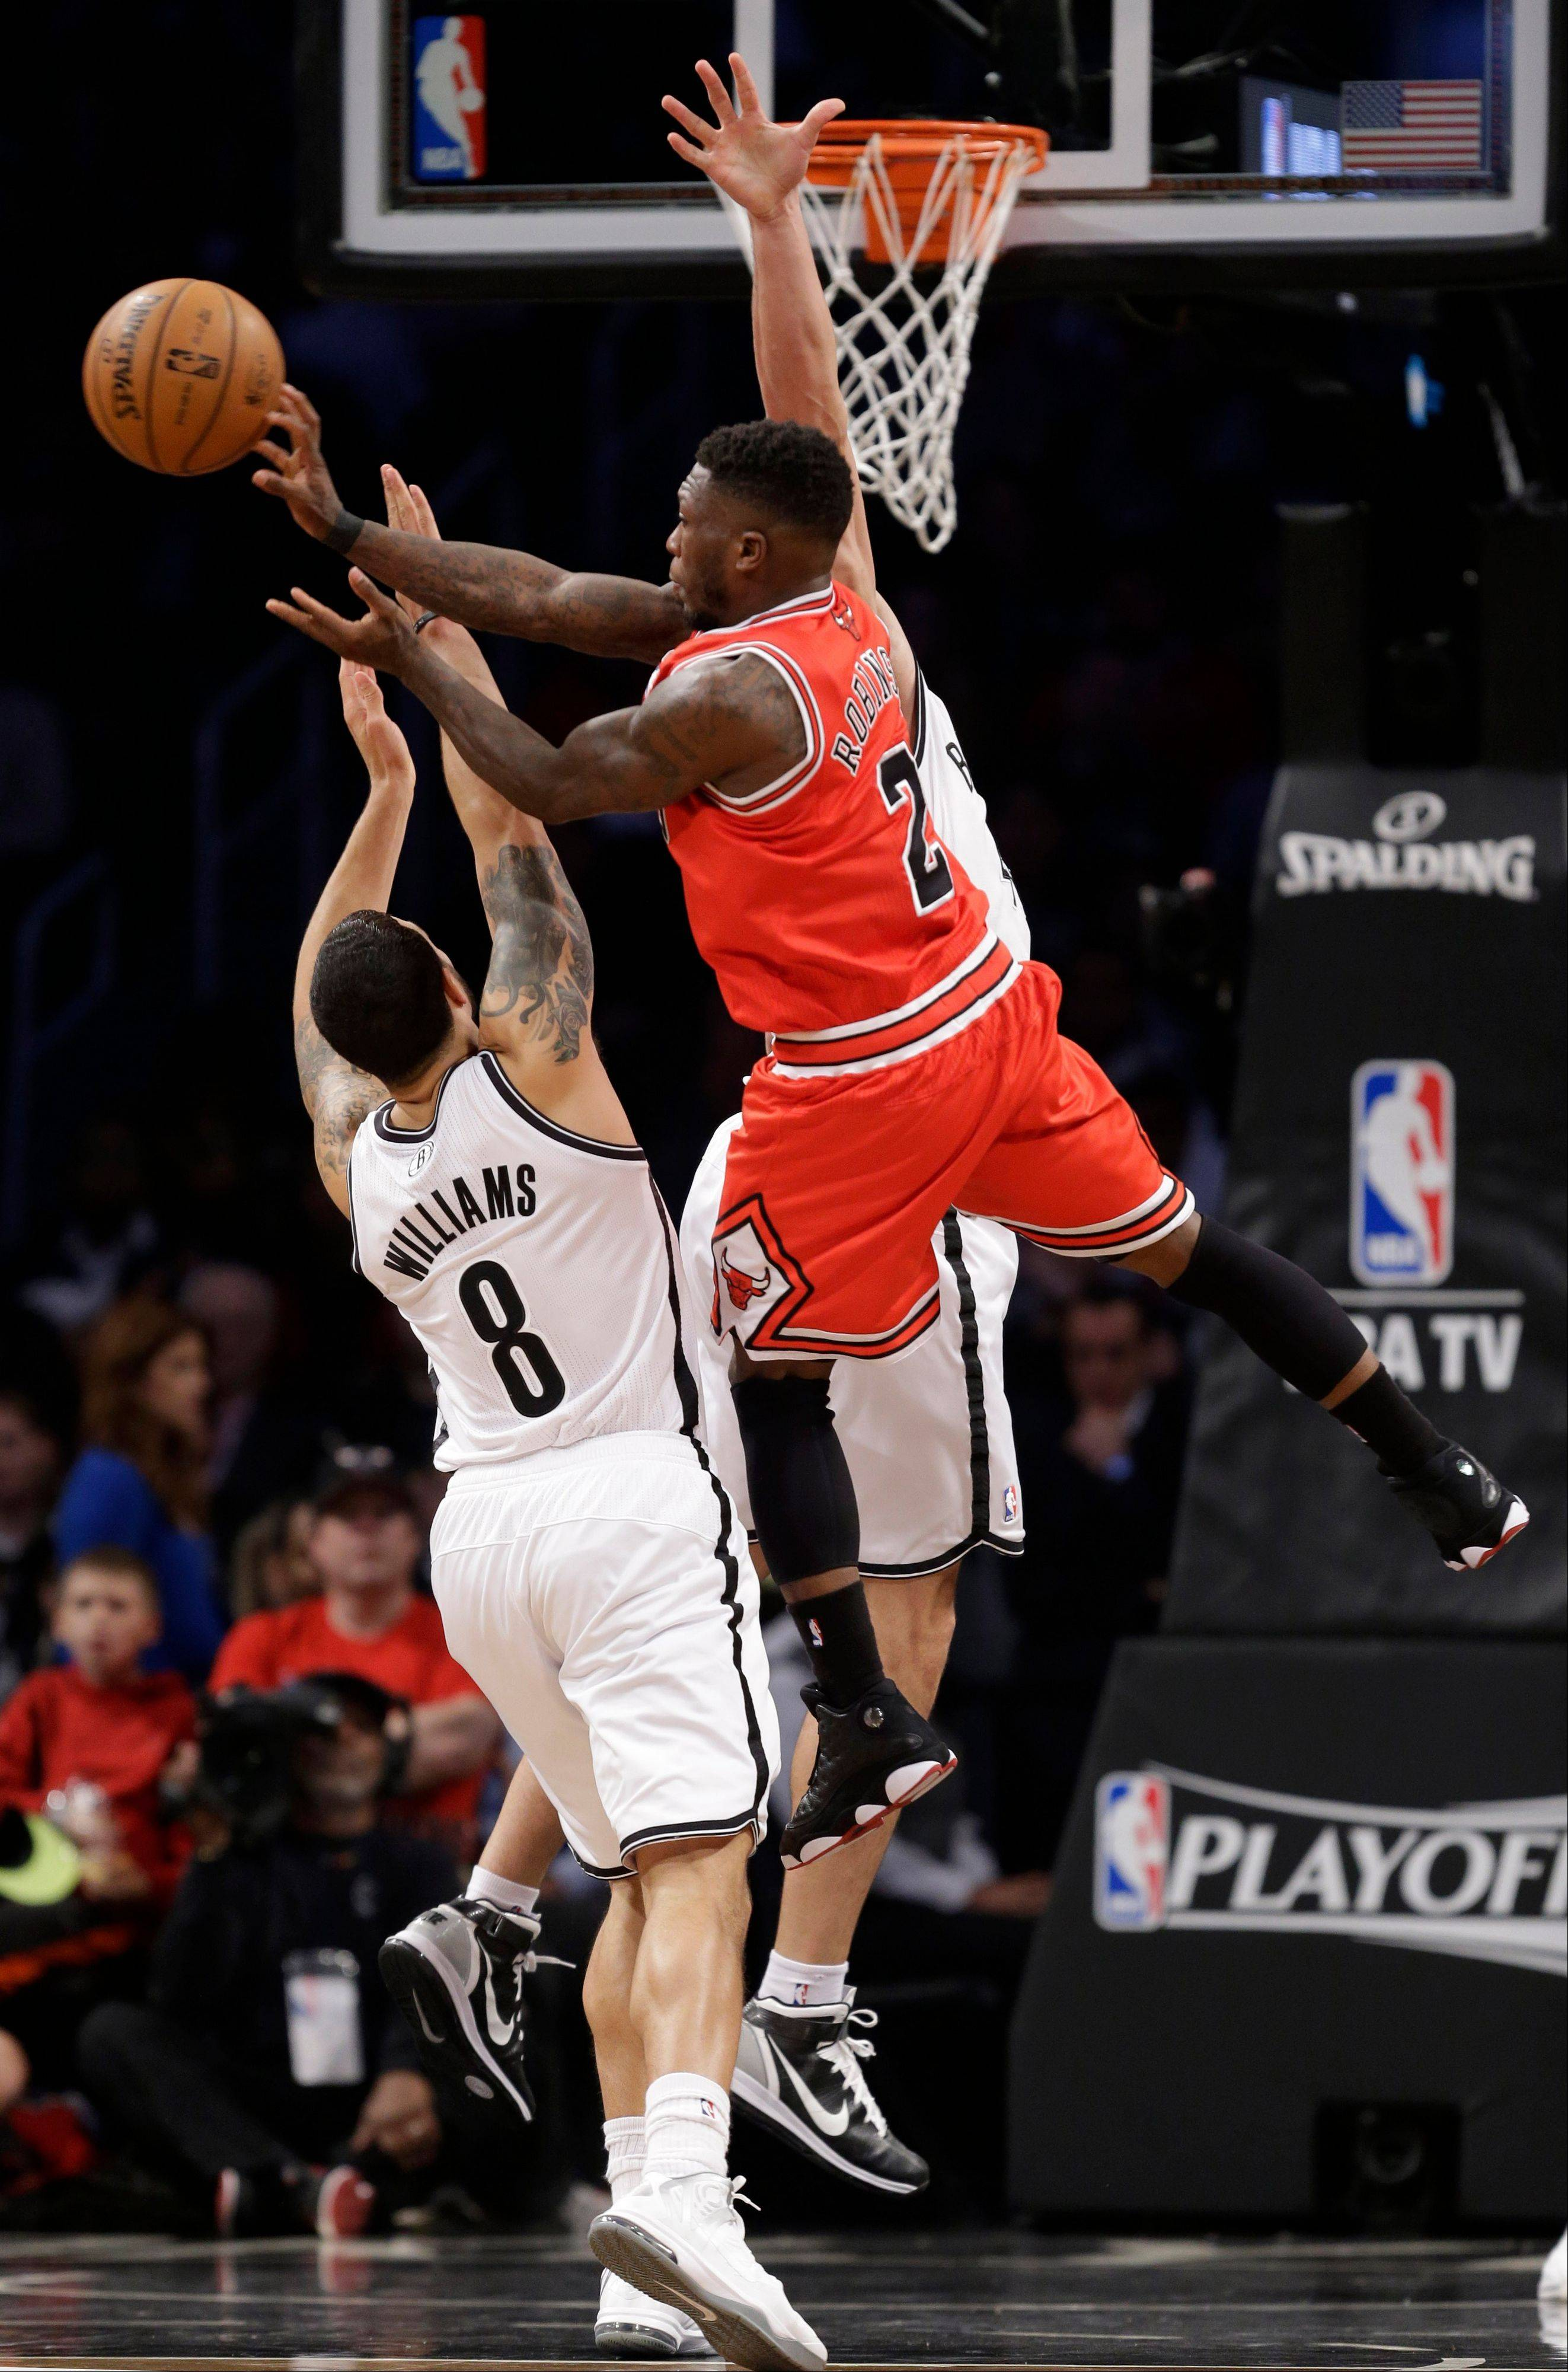 Chicago Bulls guard Nate Robinson (2) passes over the defense of Brooklyn Nets guard Deron Williams (8) in the first half of Game 5 of their first-round NBA basketball playoff series, Monday, April 29, 2013, in New York.